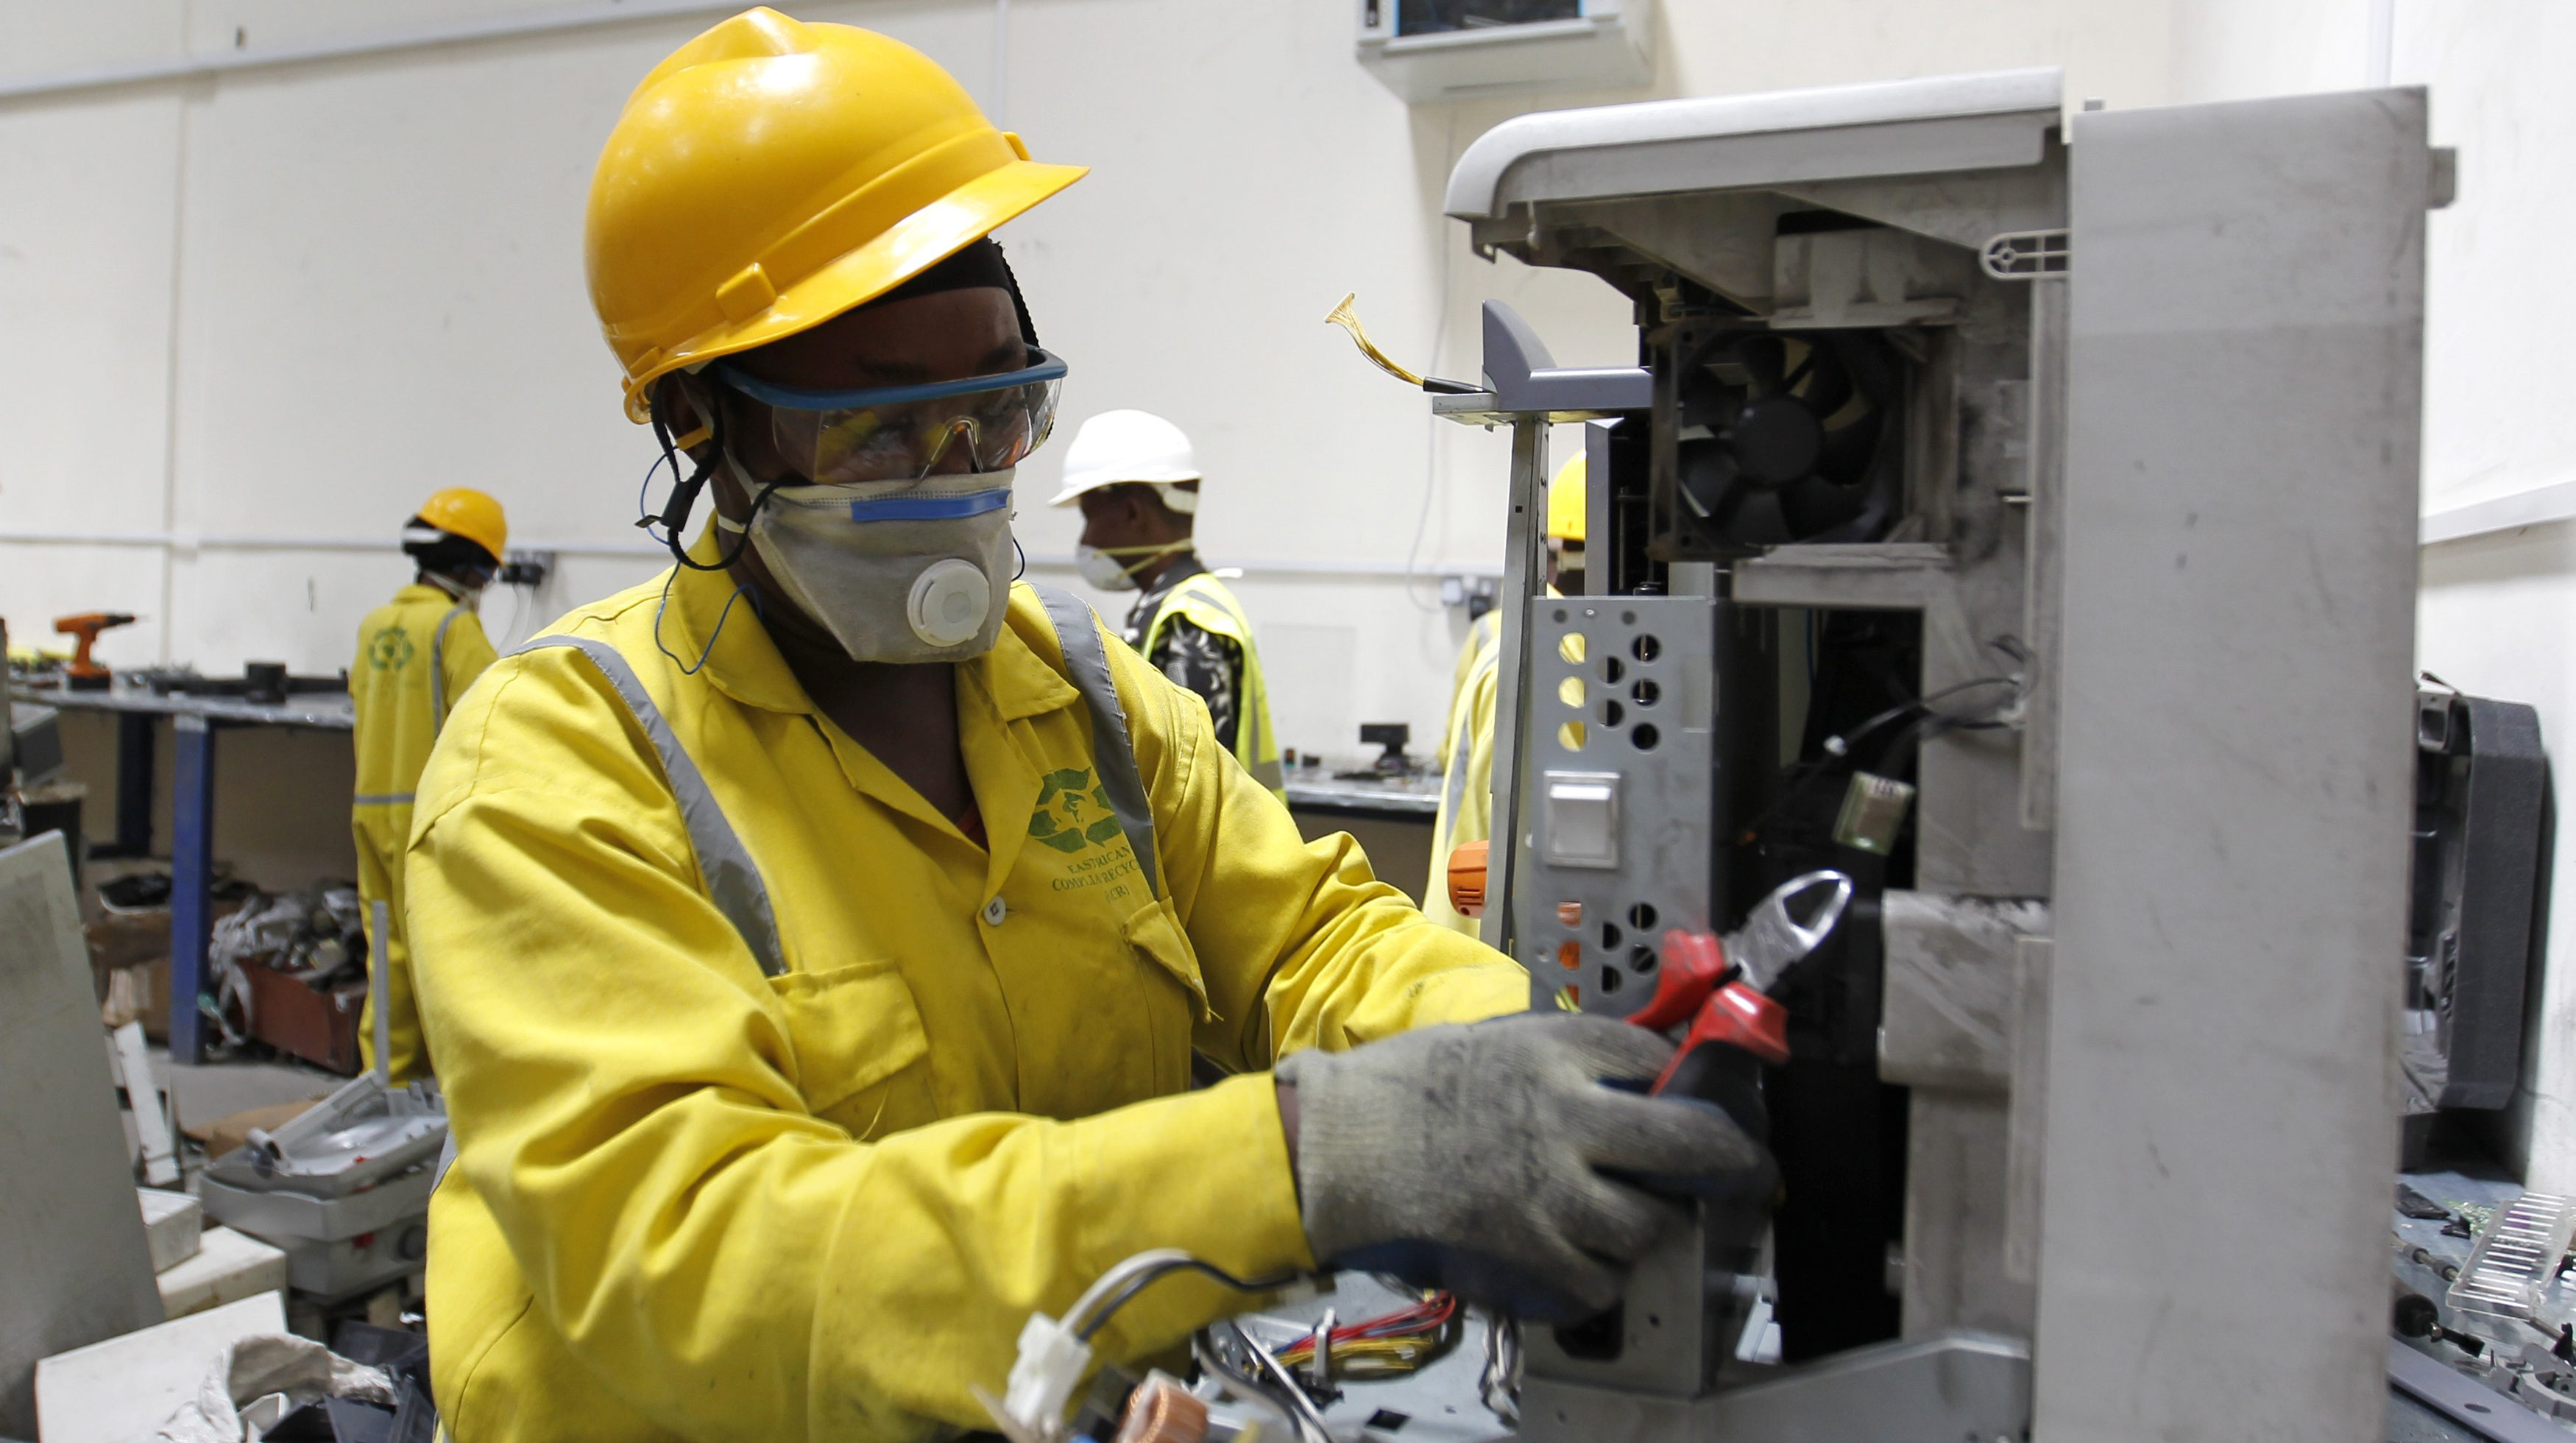 An employee dismantles parts of discarded computers and other electronics for recycling at the EACR facility in Athi River near Kenya's capital Nairobi